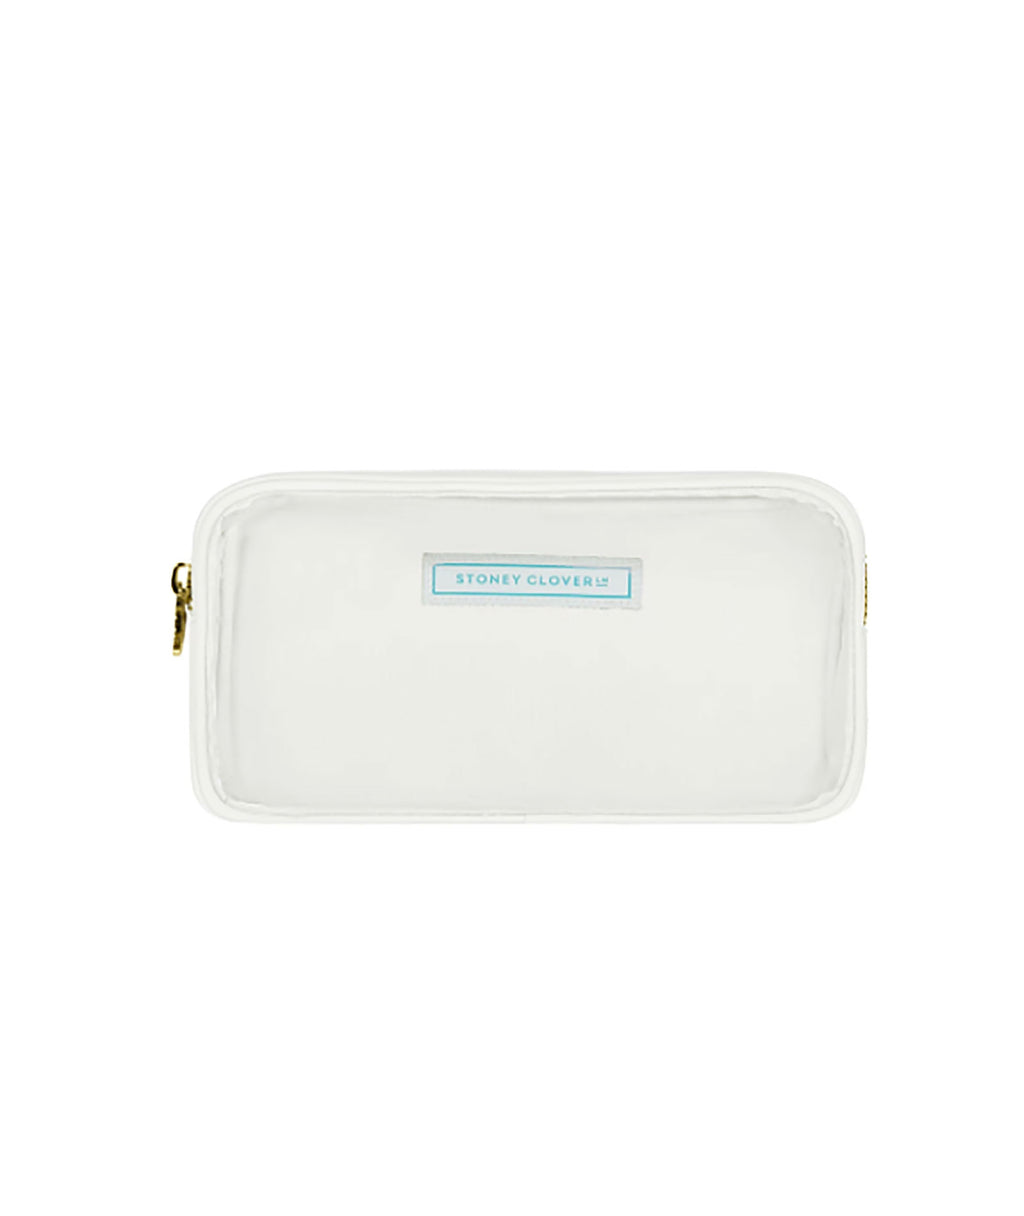 Stoney Clover Small Blanc Clear Pouch